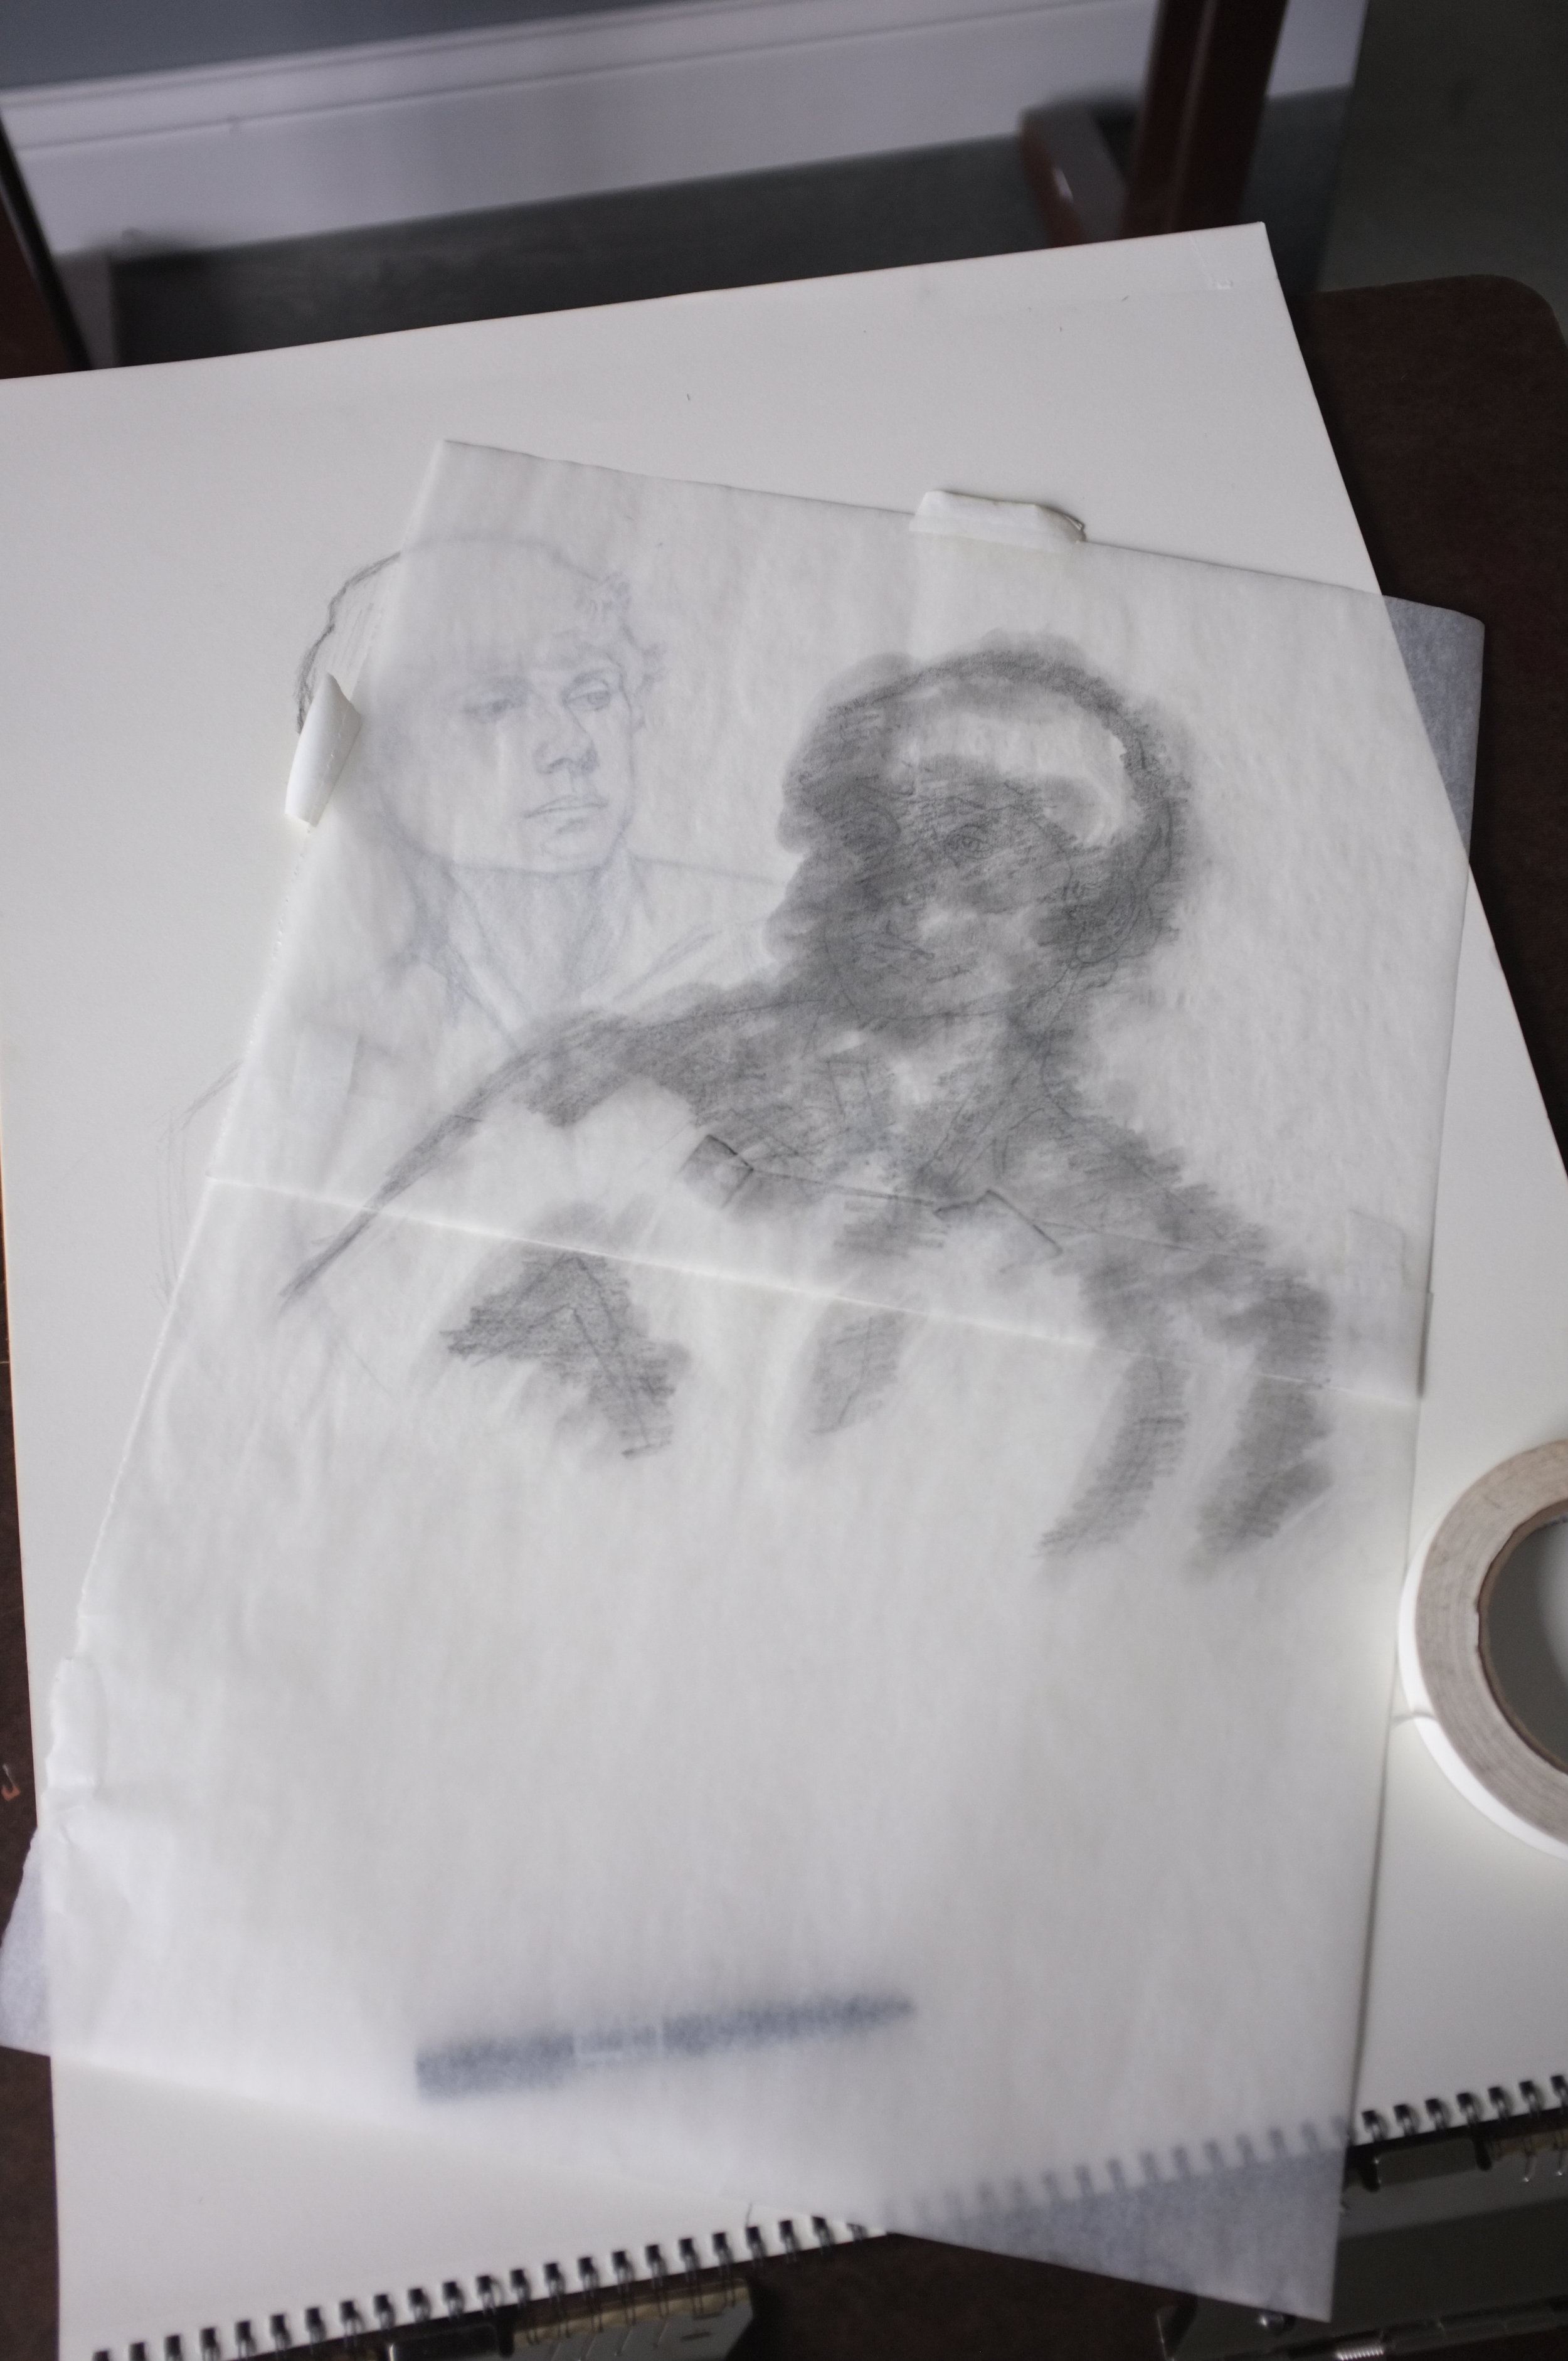 And then covered the back of the traced drawing with graphite from a 6B pencil.